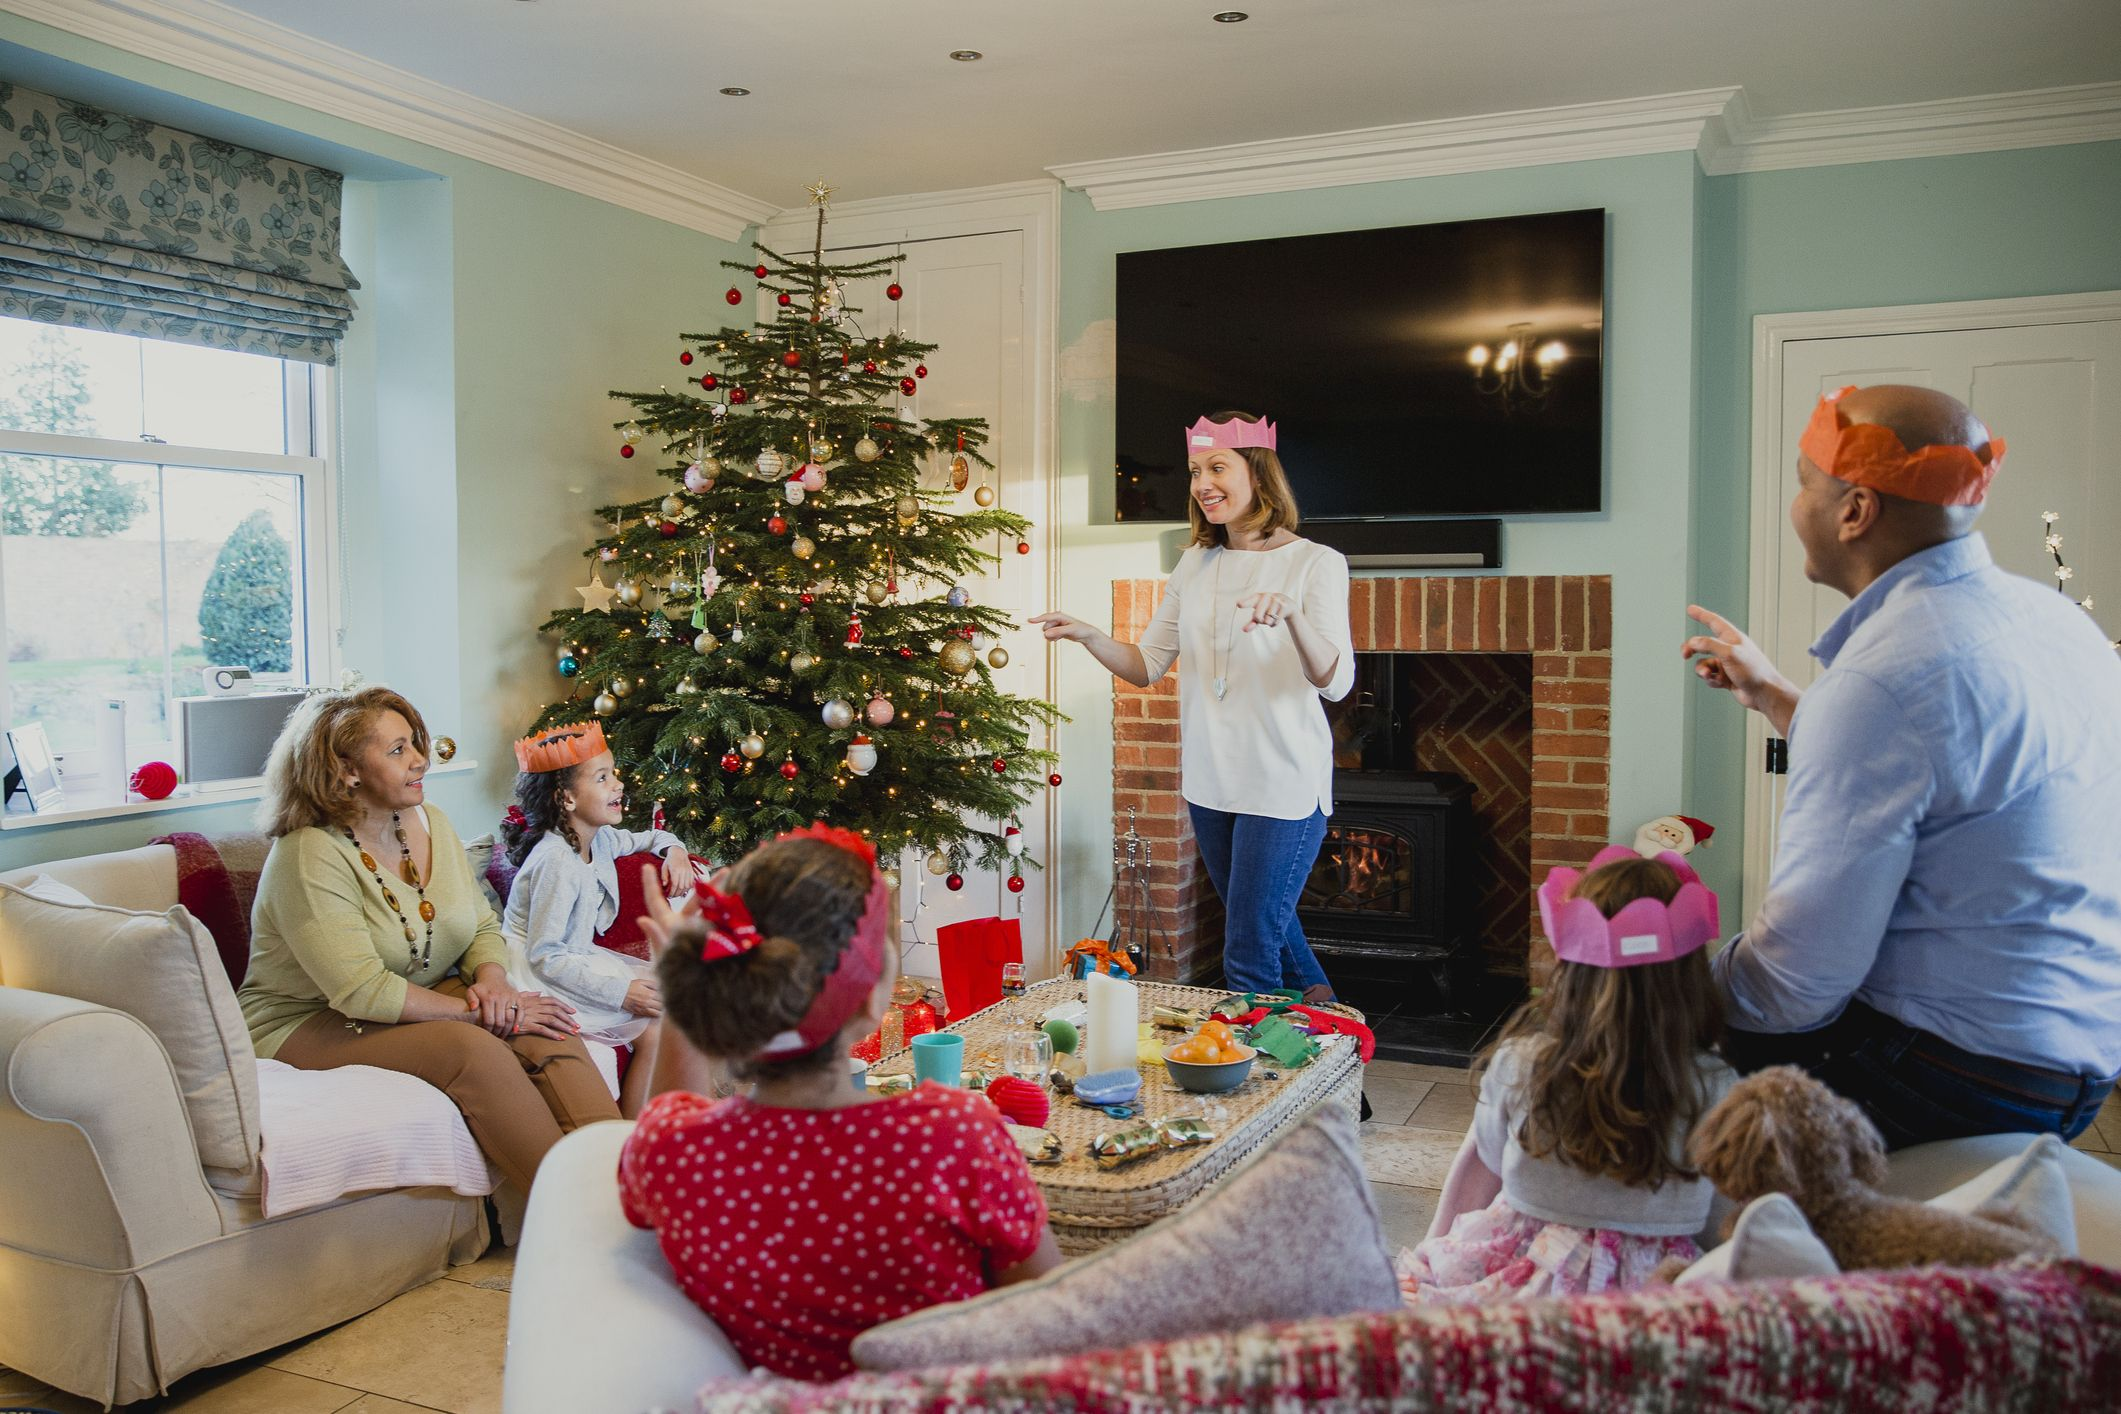 10 Exciting Christmas Games You Can Play With the Whole Family